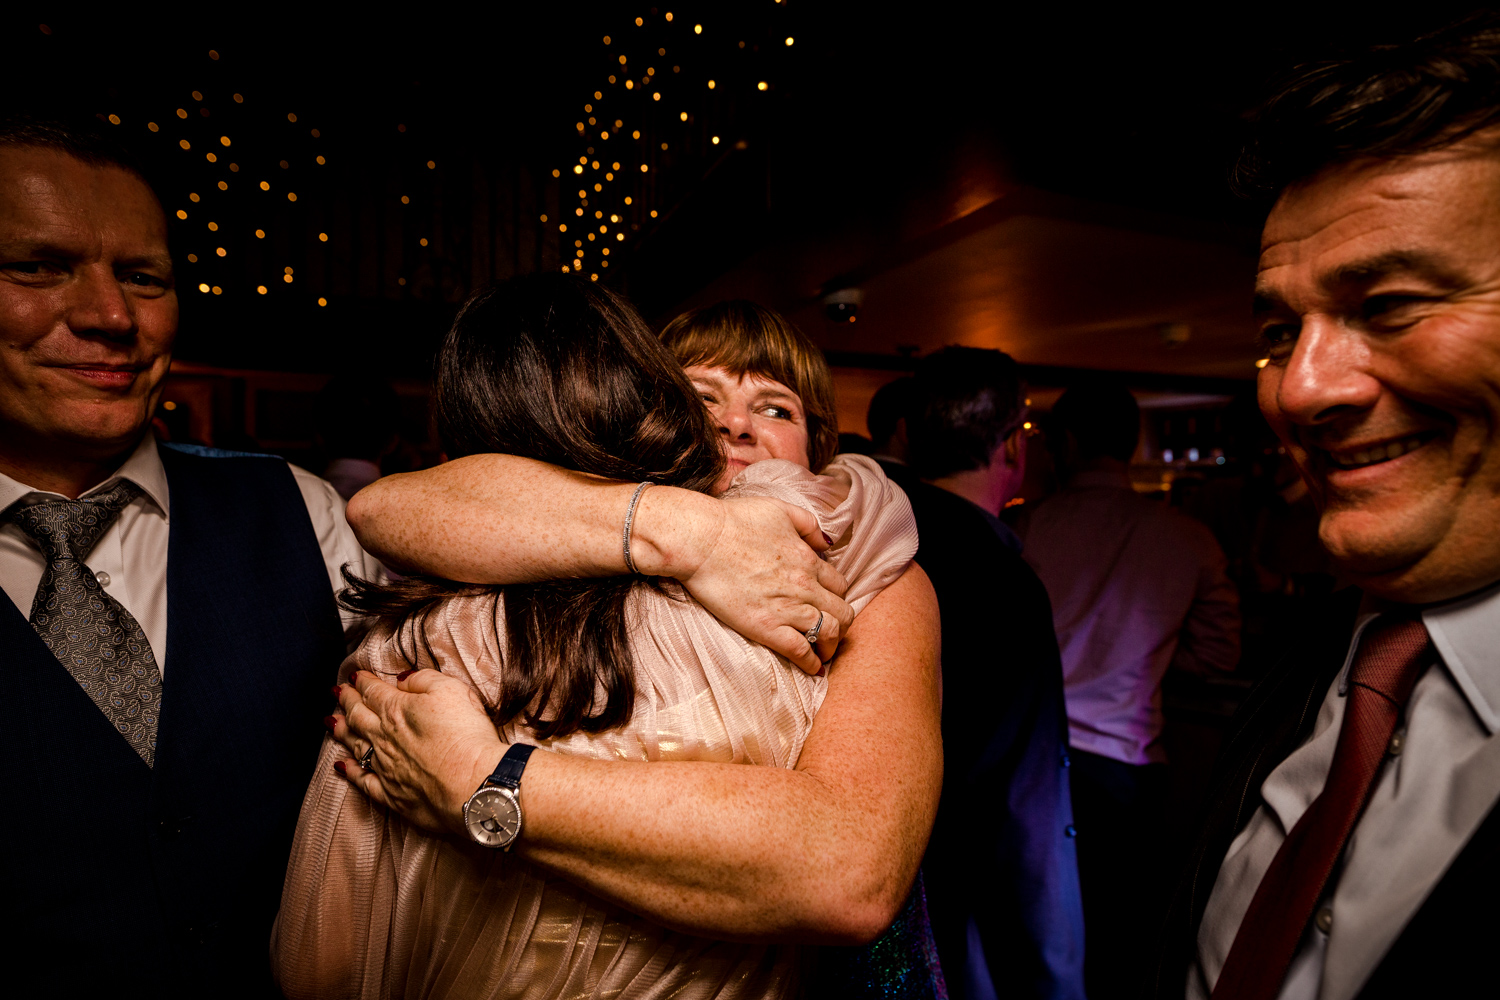 Big hugs for the guests at a Manchester wedding